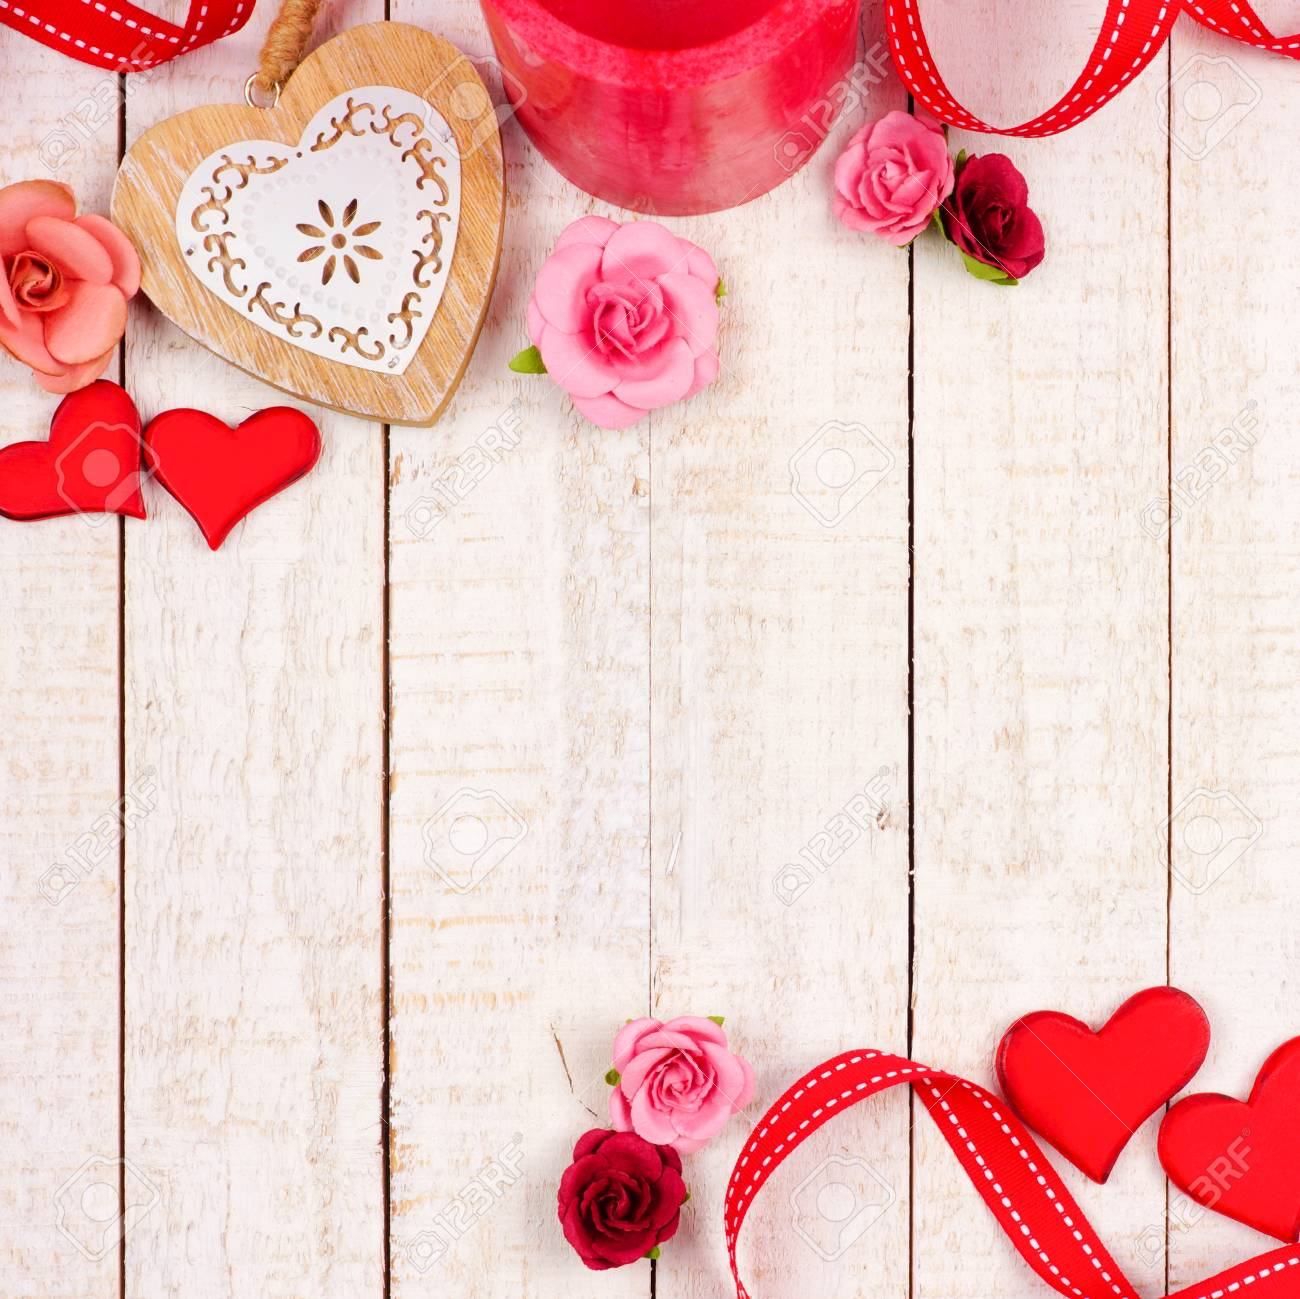 Valentines Day Corner Border Of Hearts Flowers Gifts And Decor